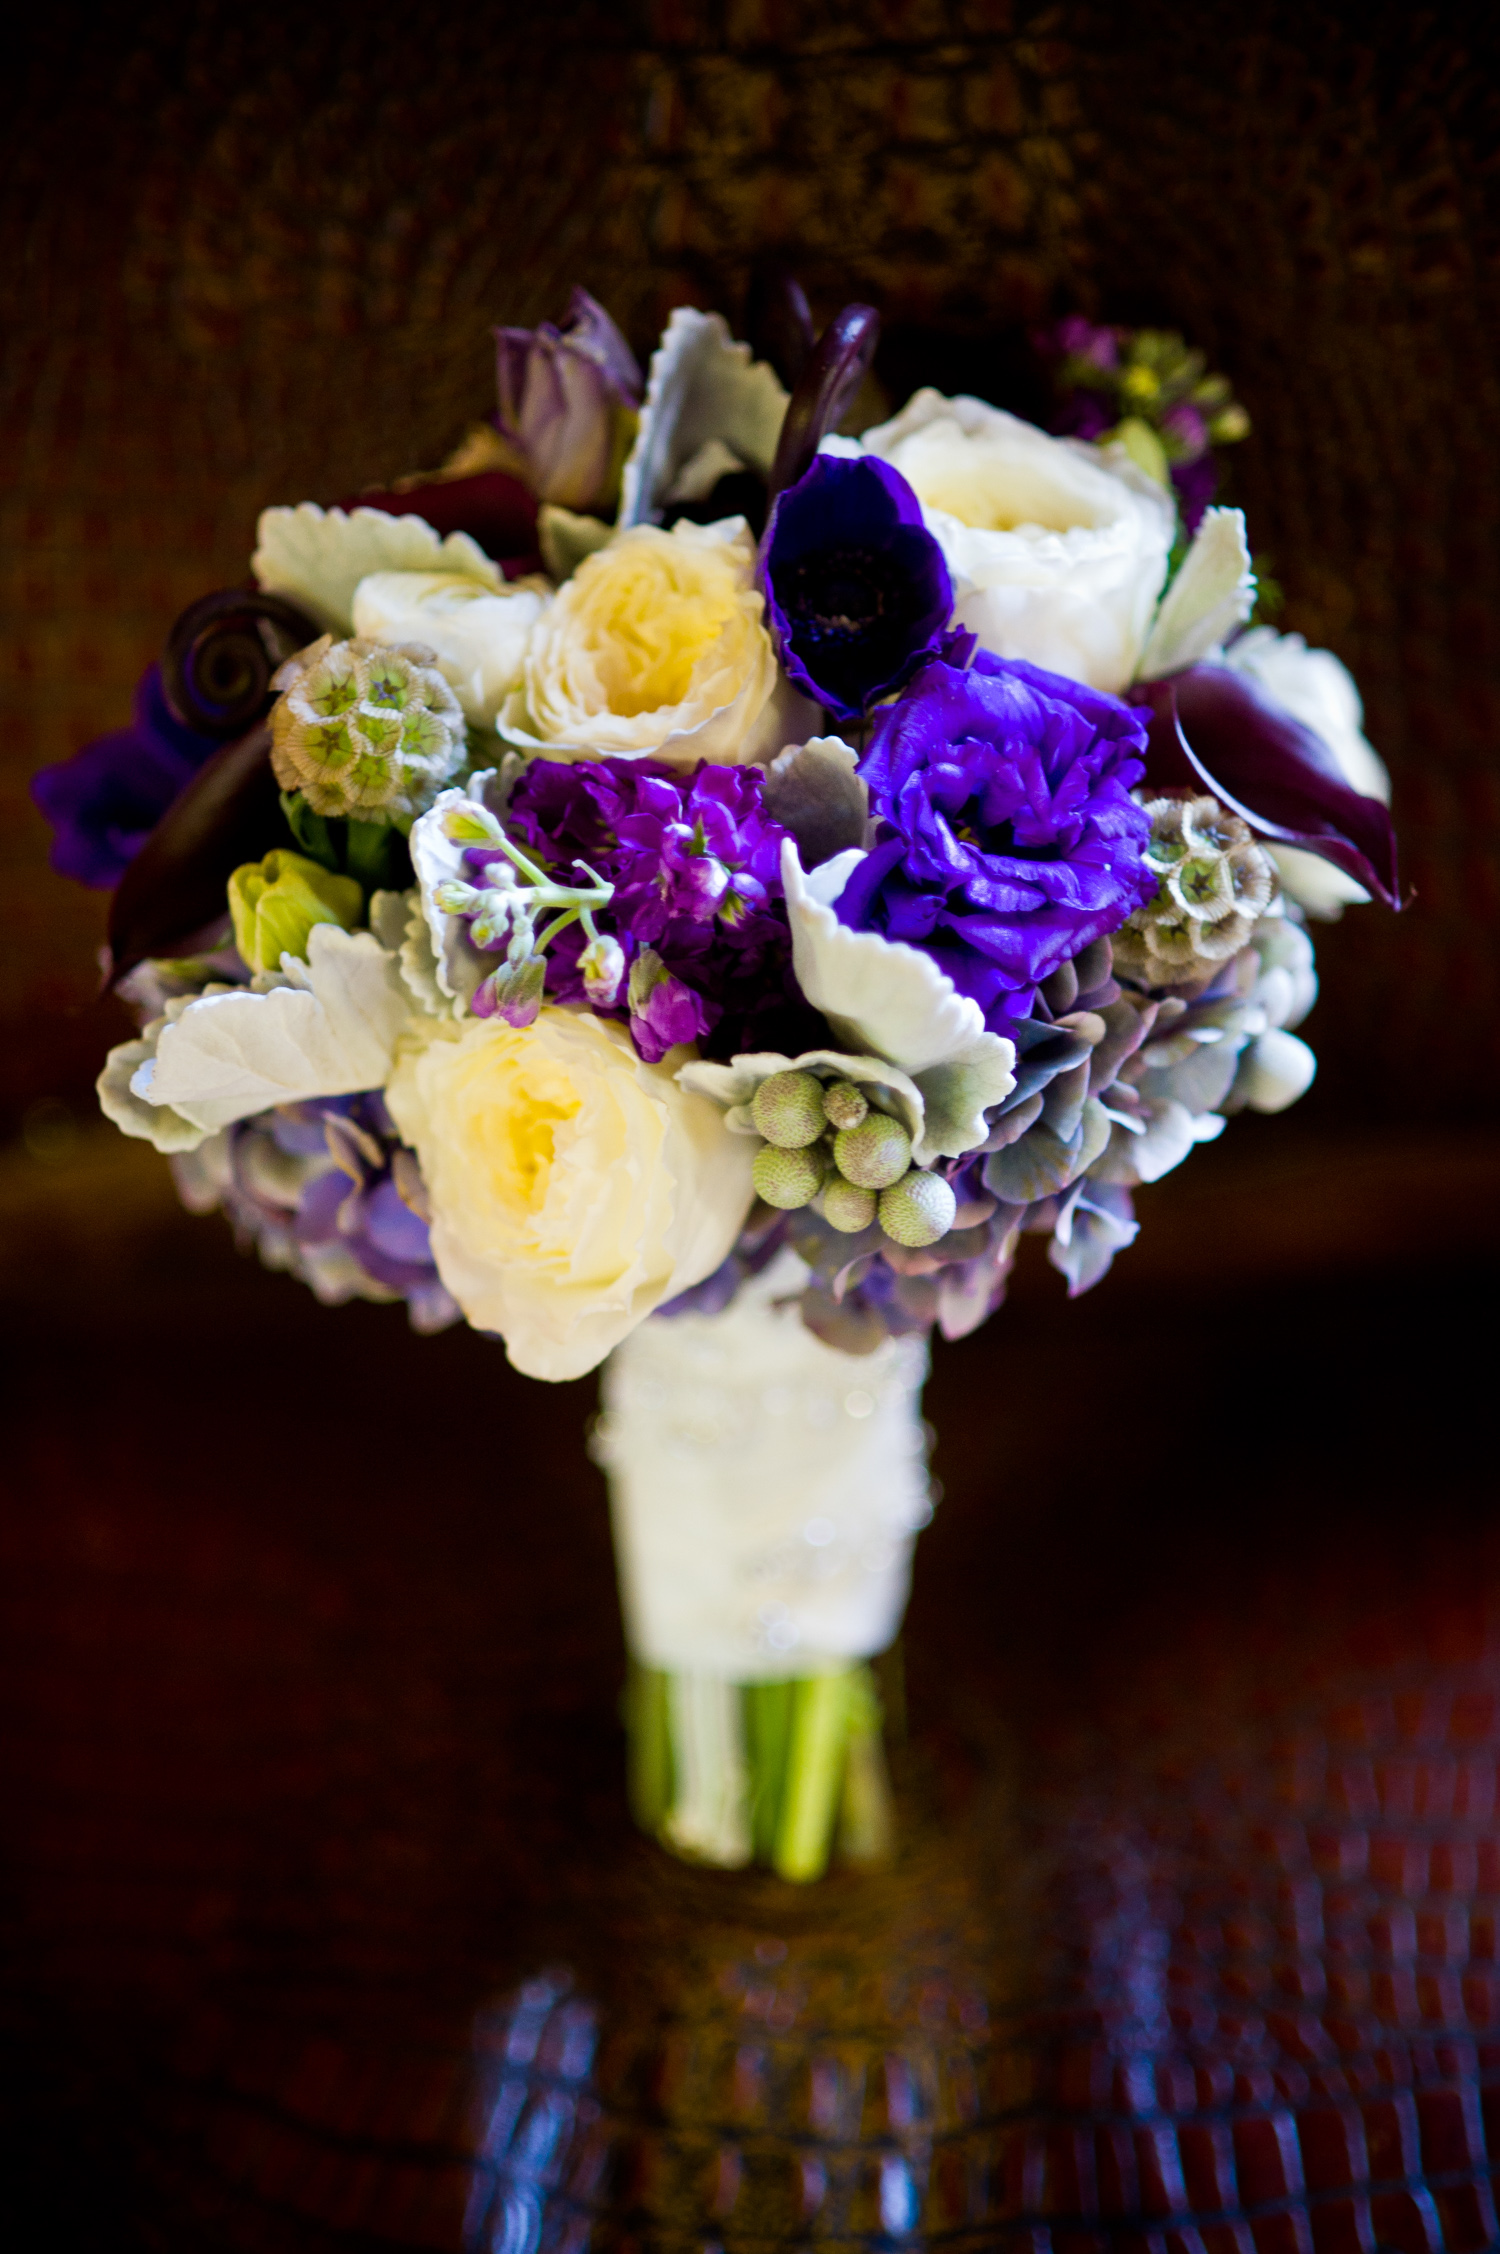 Crooked_Willow_Farms__Sedalia_Wedding_003.JPG